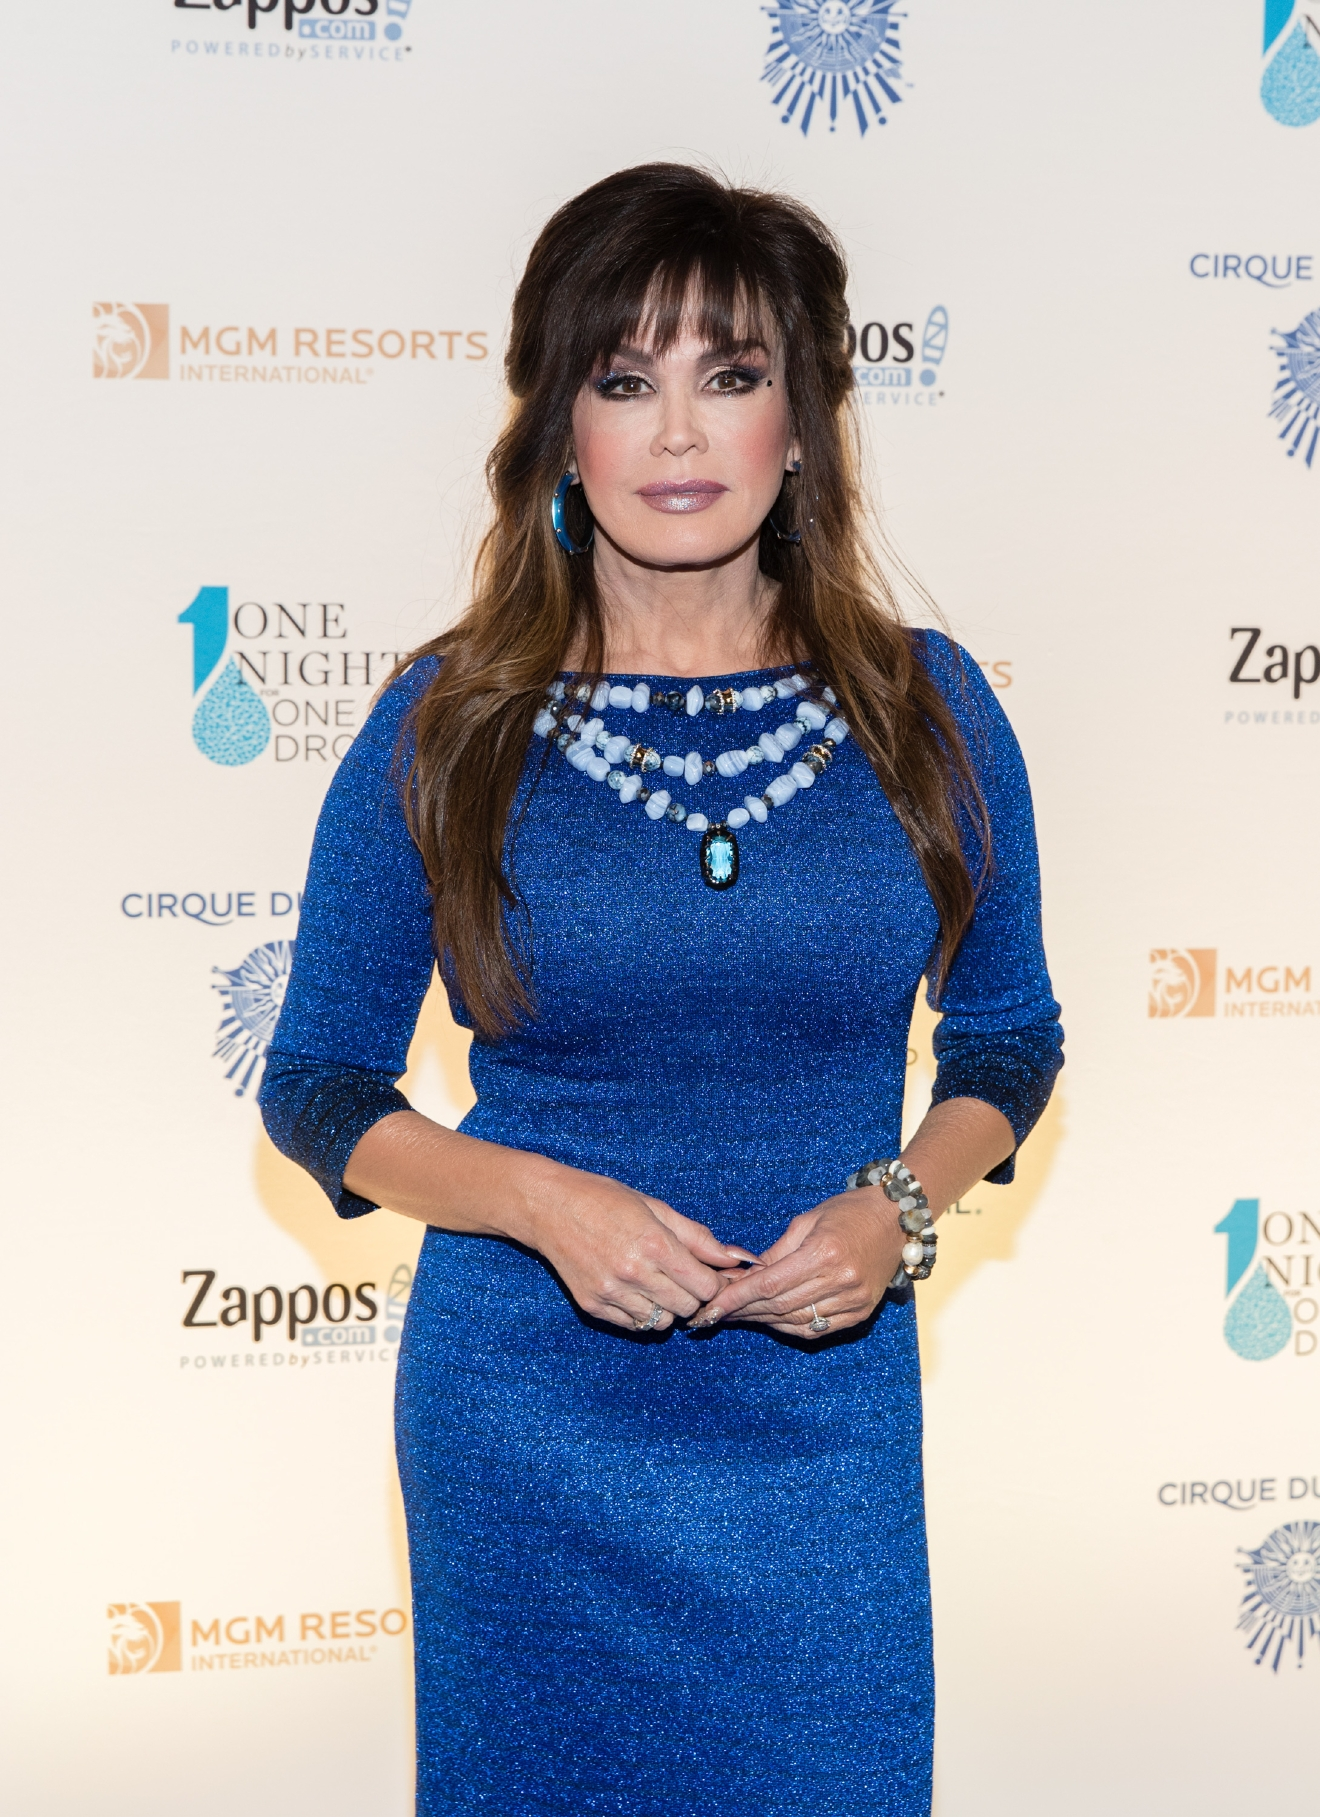 Marie Osmond at One Night for One Drop 2017. (Photo courtesy of Erik Kabik/ErikKabik.com)